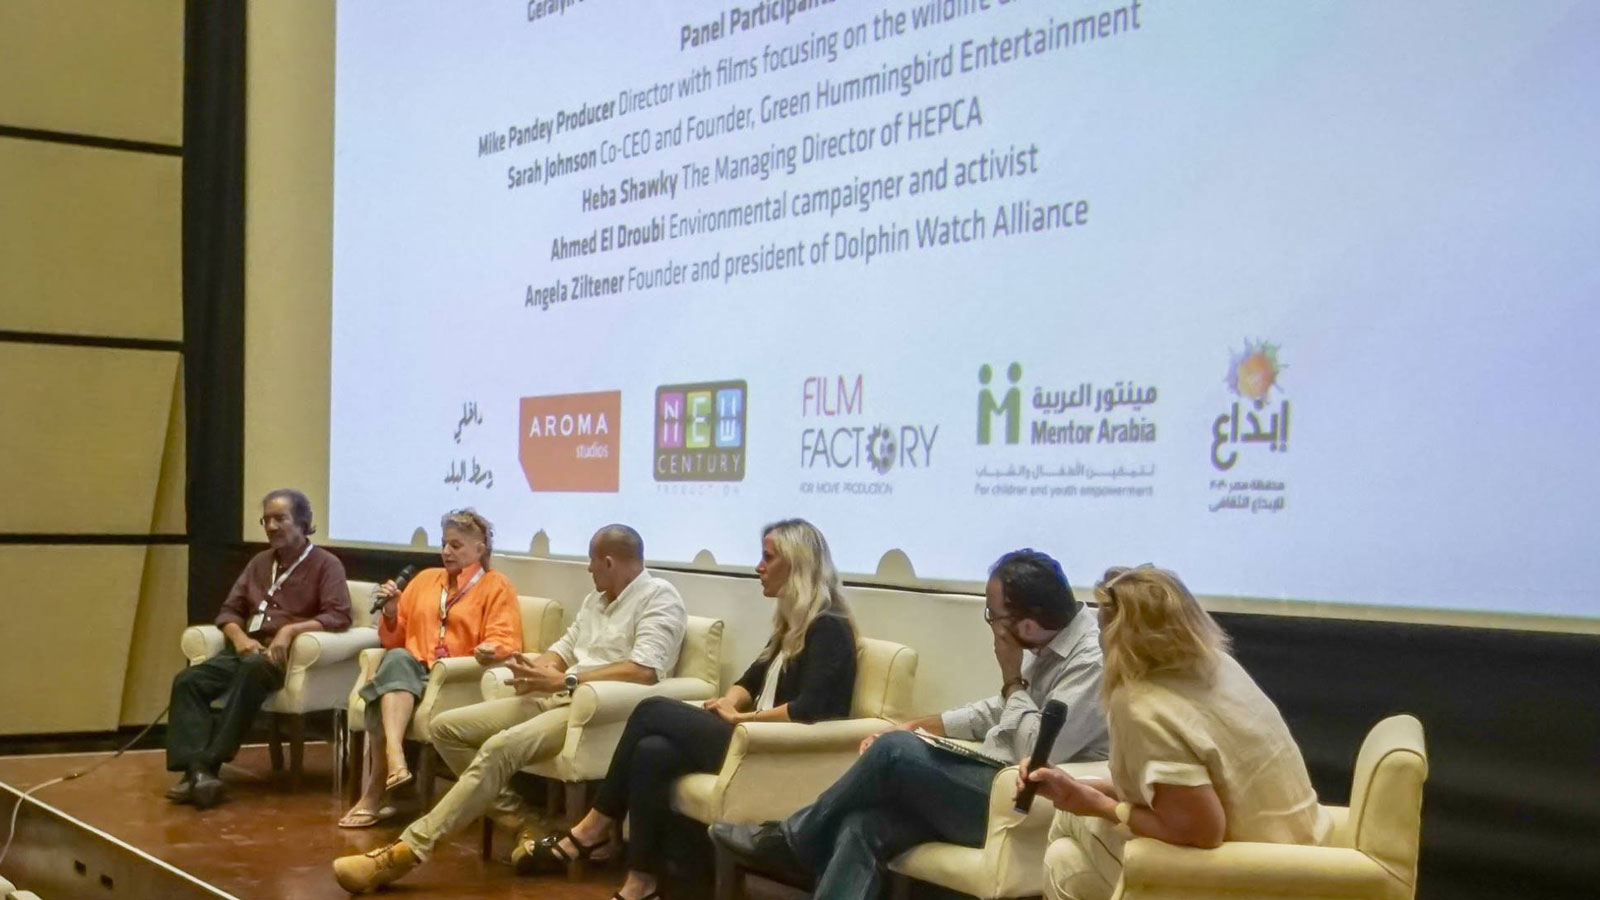 Podiumsdiskussion am El Gouna Film Festival